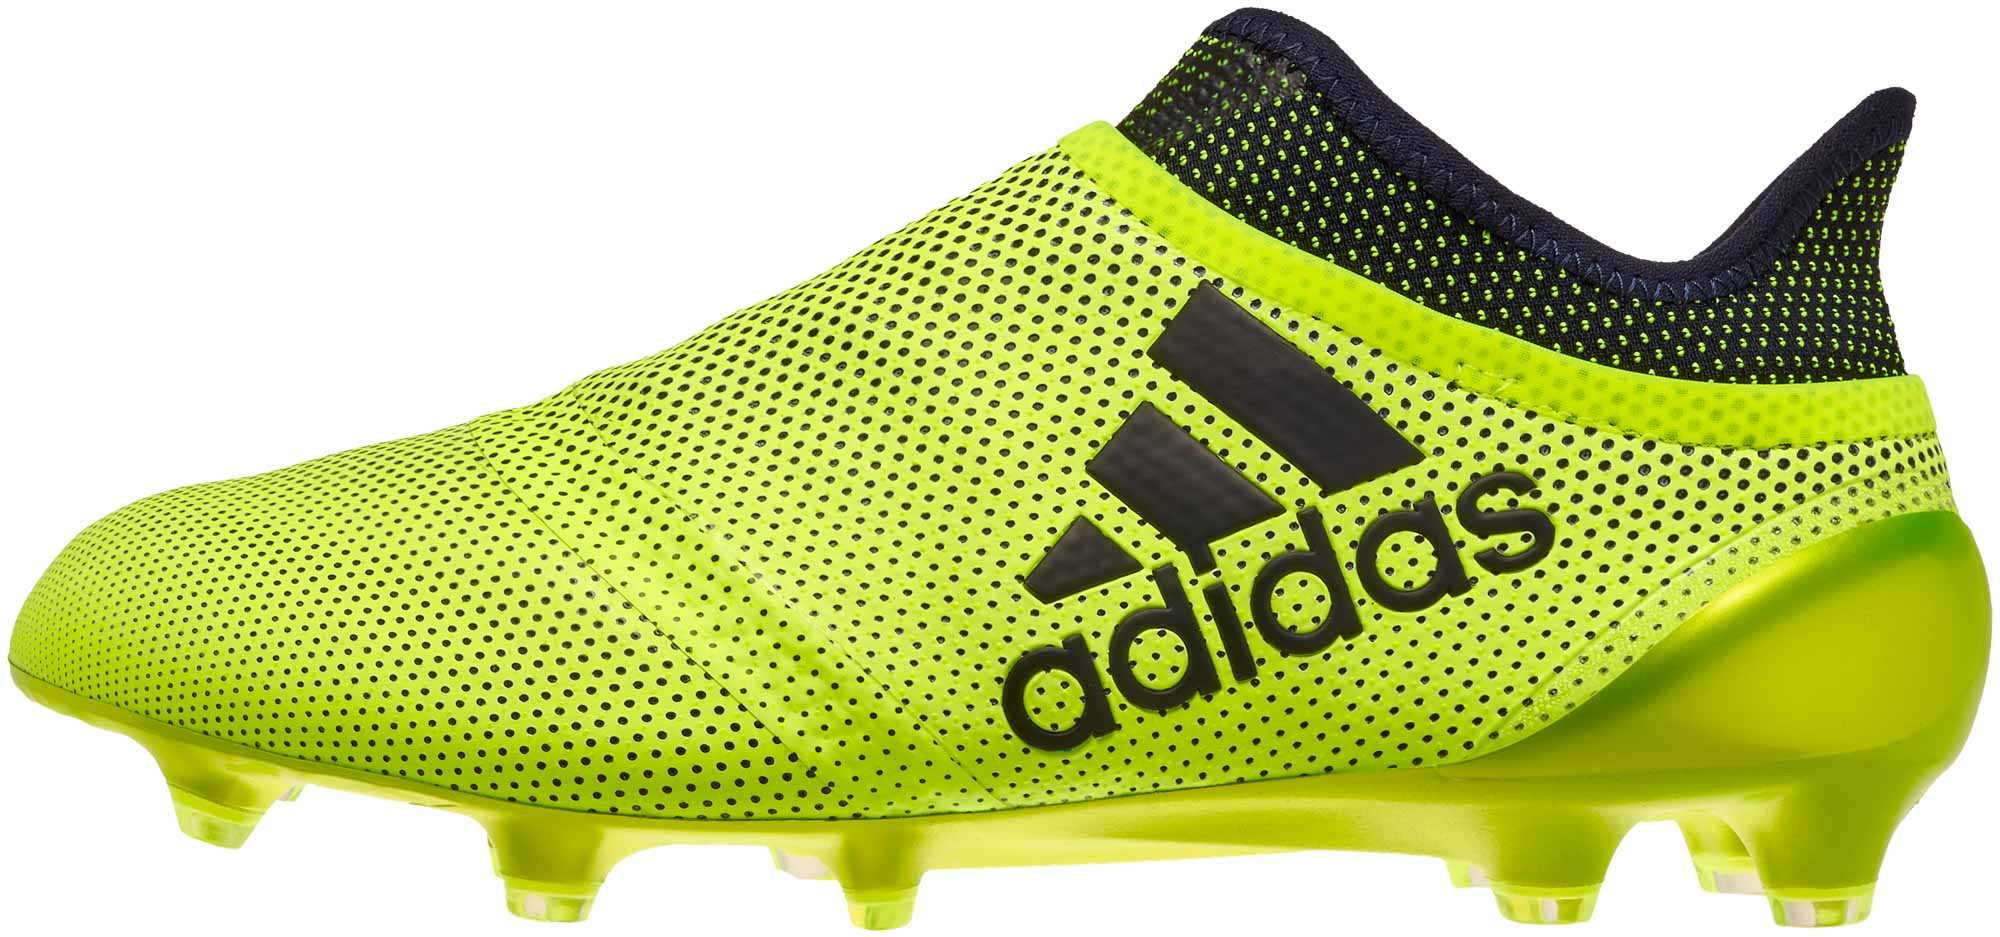 cdde892211f0 adidas X 17+ Purechaos FG Soccer Cleats - Solar Yellow   Legend Ink ...